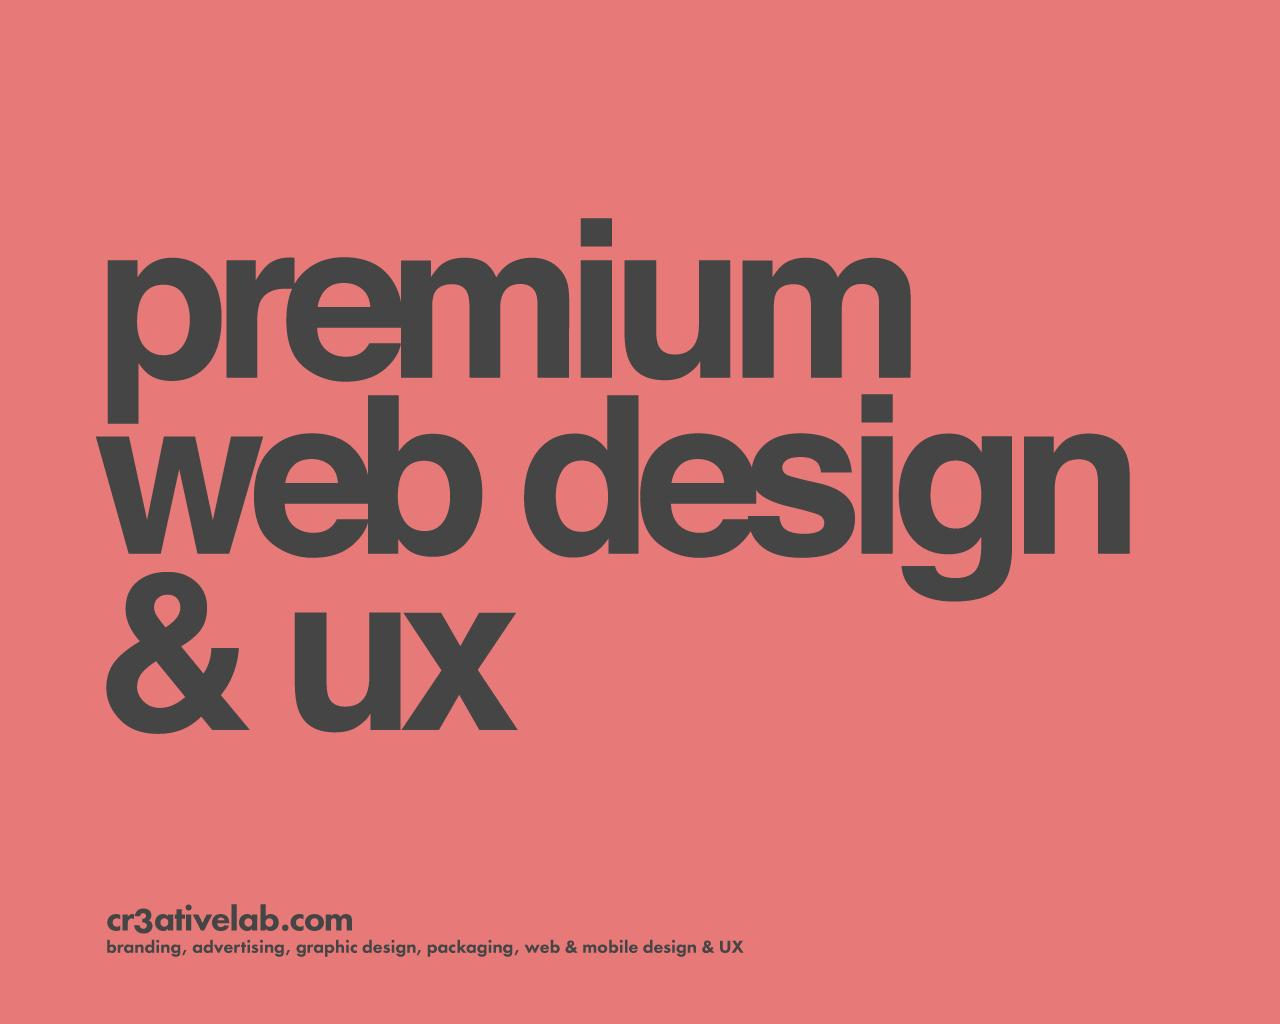 Premium Web Page Design & UX - Adobe XD, Figma or Sketch by cr3ativelab - 103016